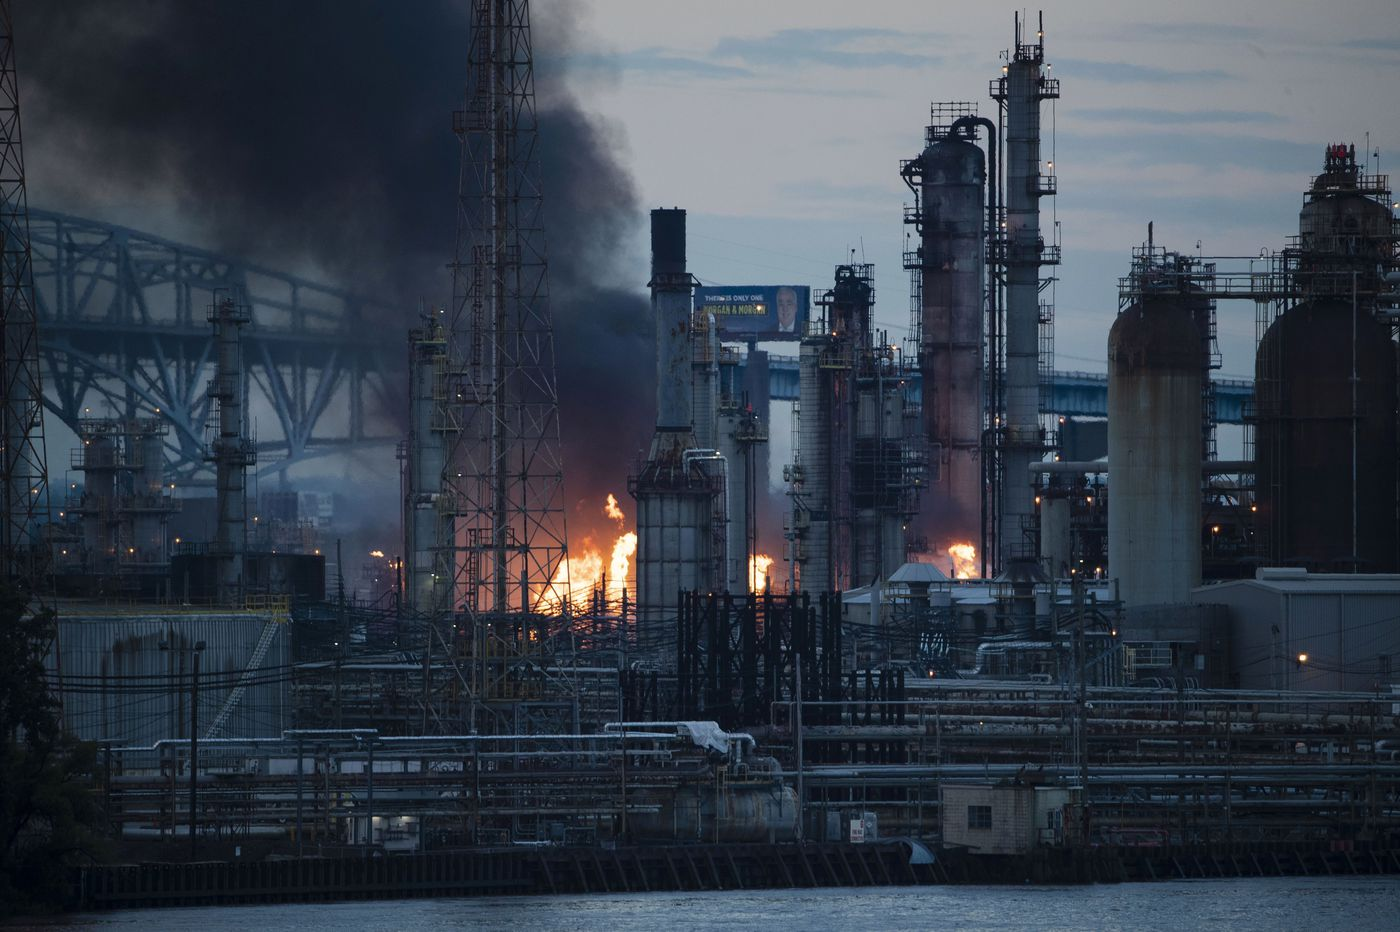 Philadelphia refinery workers sue over abrupt closure, layoffs